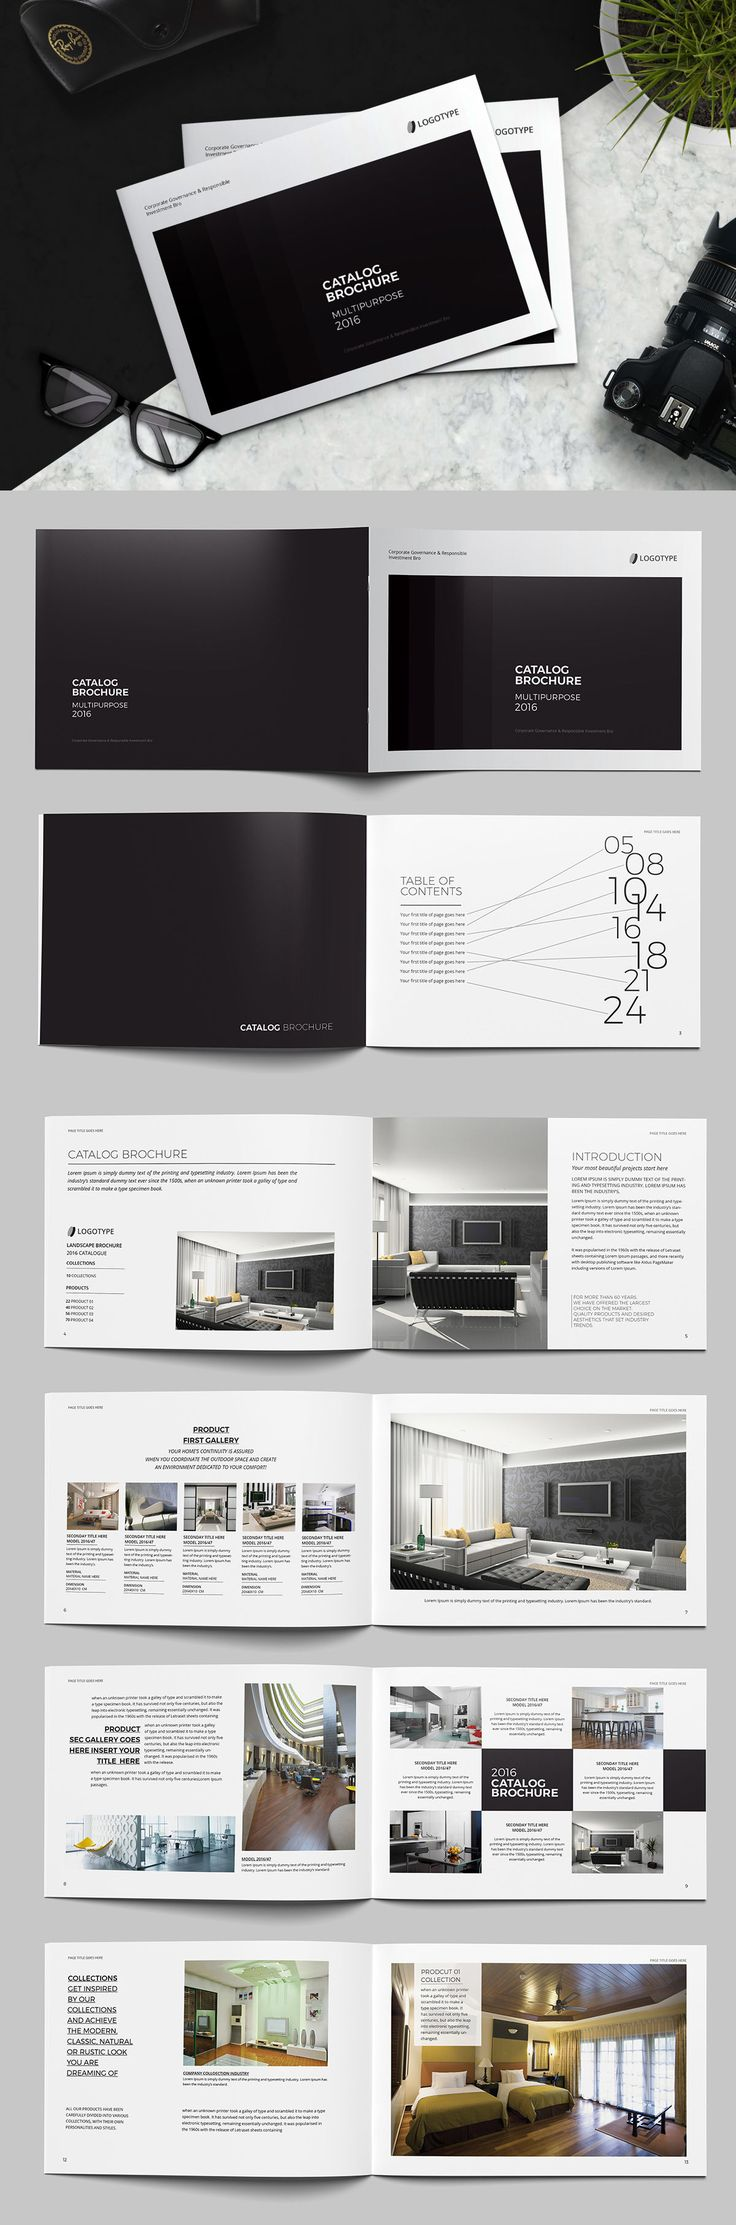 Landscape Catalog Brochure Template InDesign INDD